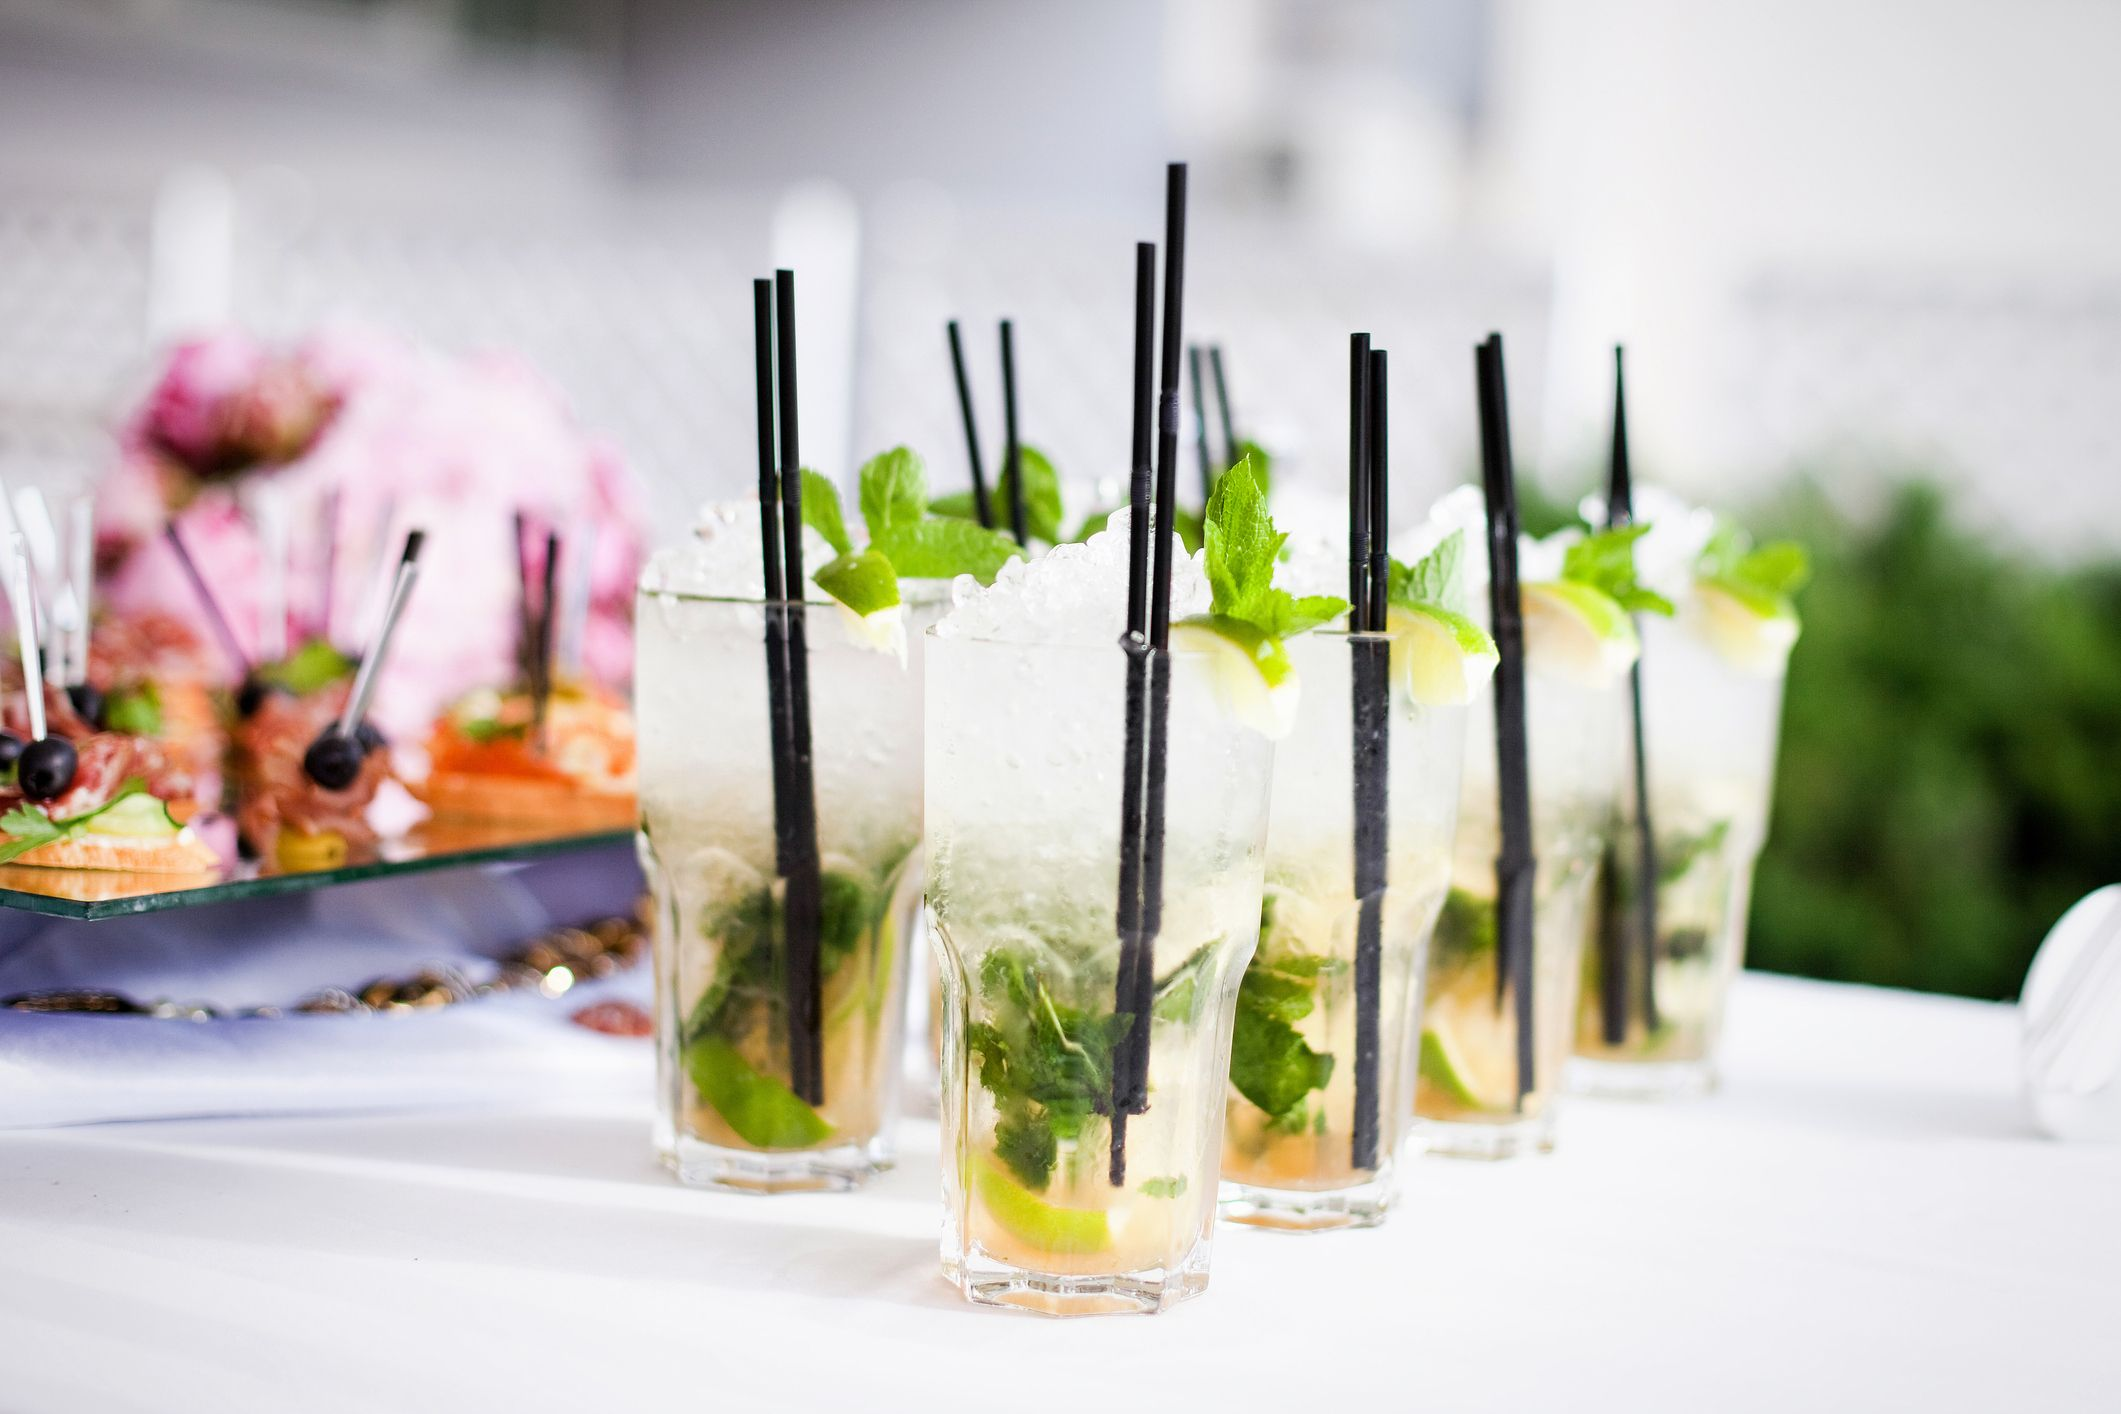 Cocktails at a party (Thinkstock/PA)